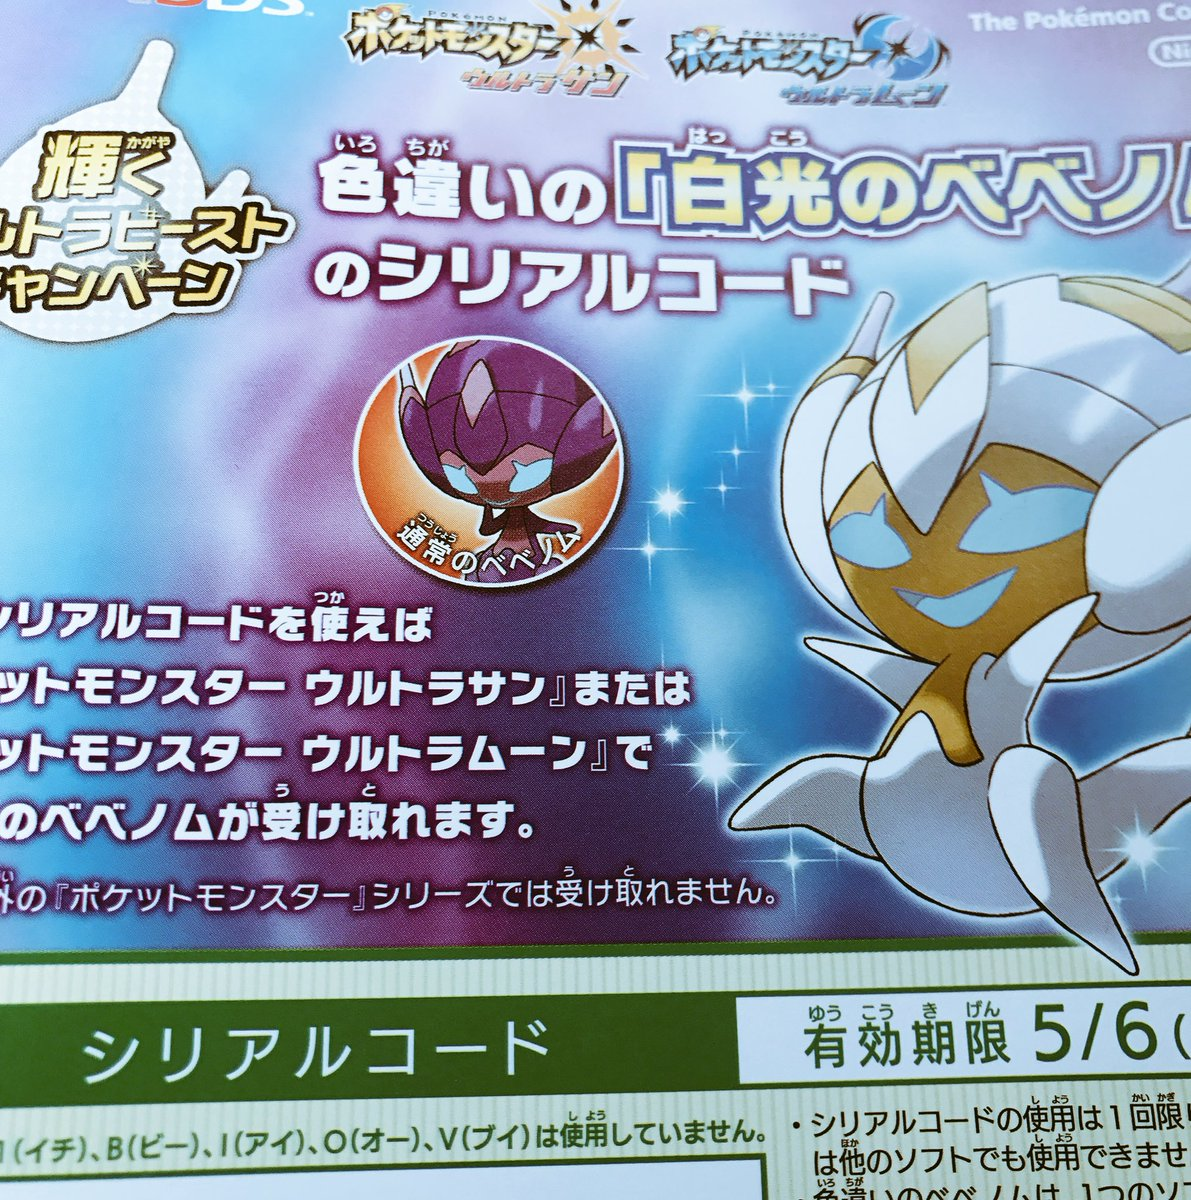 Shiny Poipole code #GIVEAWAY ! 色違いのベベノム シリアルコード  Follow me & RT to enter. 2winners will be chosen. Ends March 18.  #Pokemon